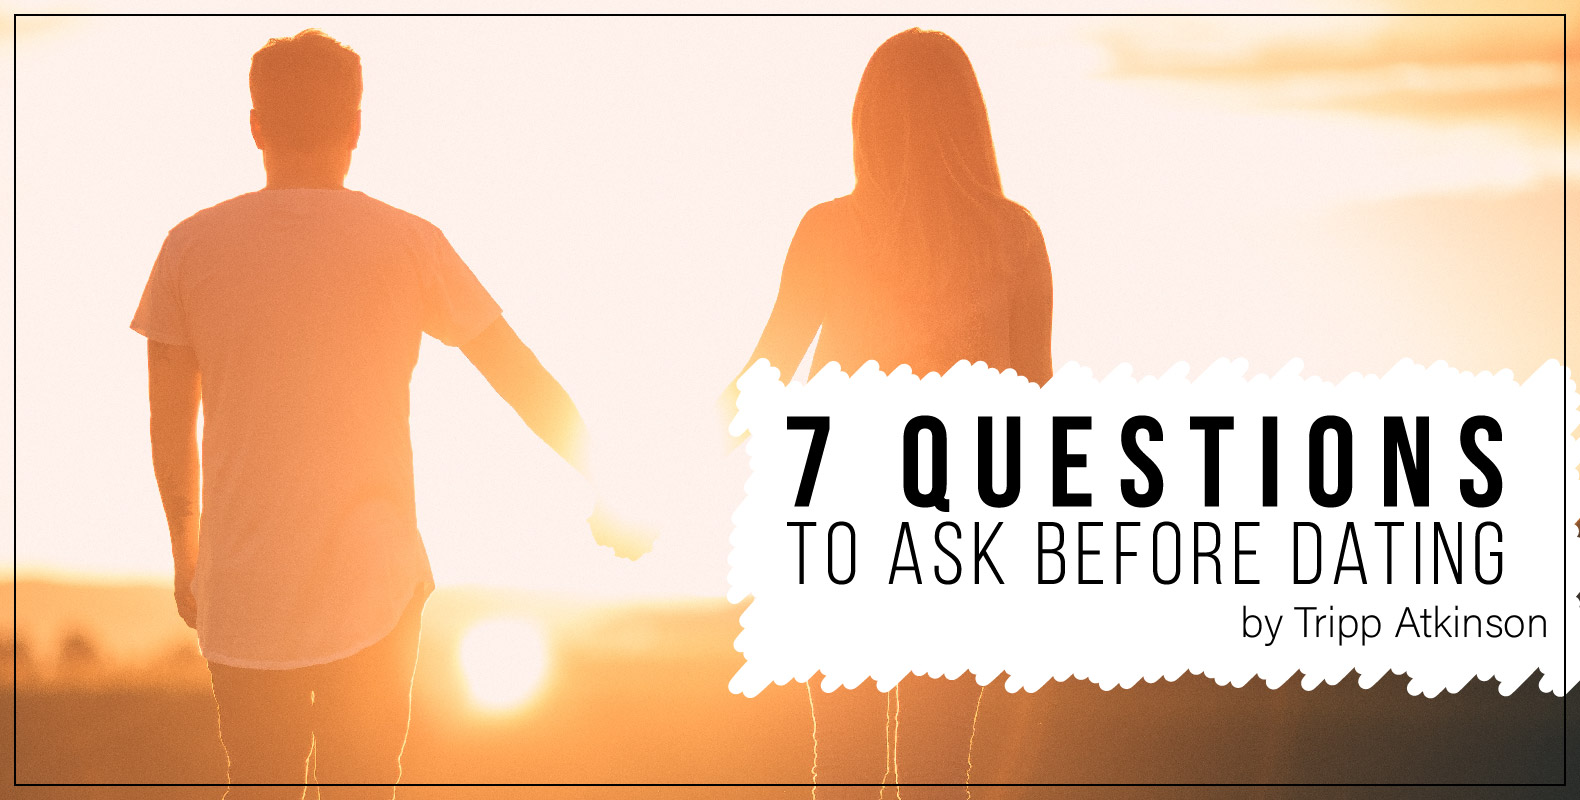 Tripp Atkinson 7 Questions to ask before dating